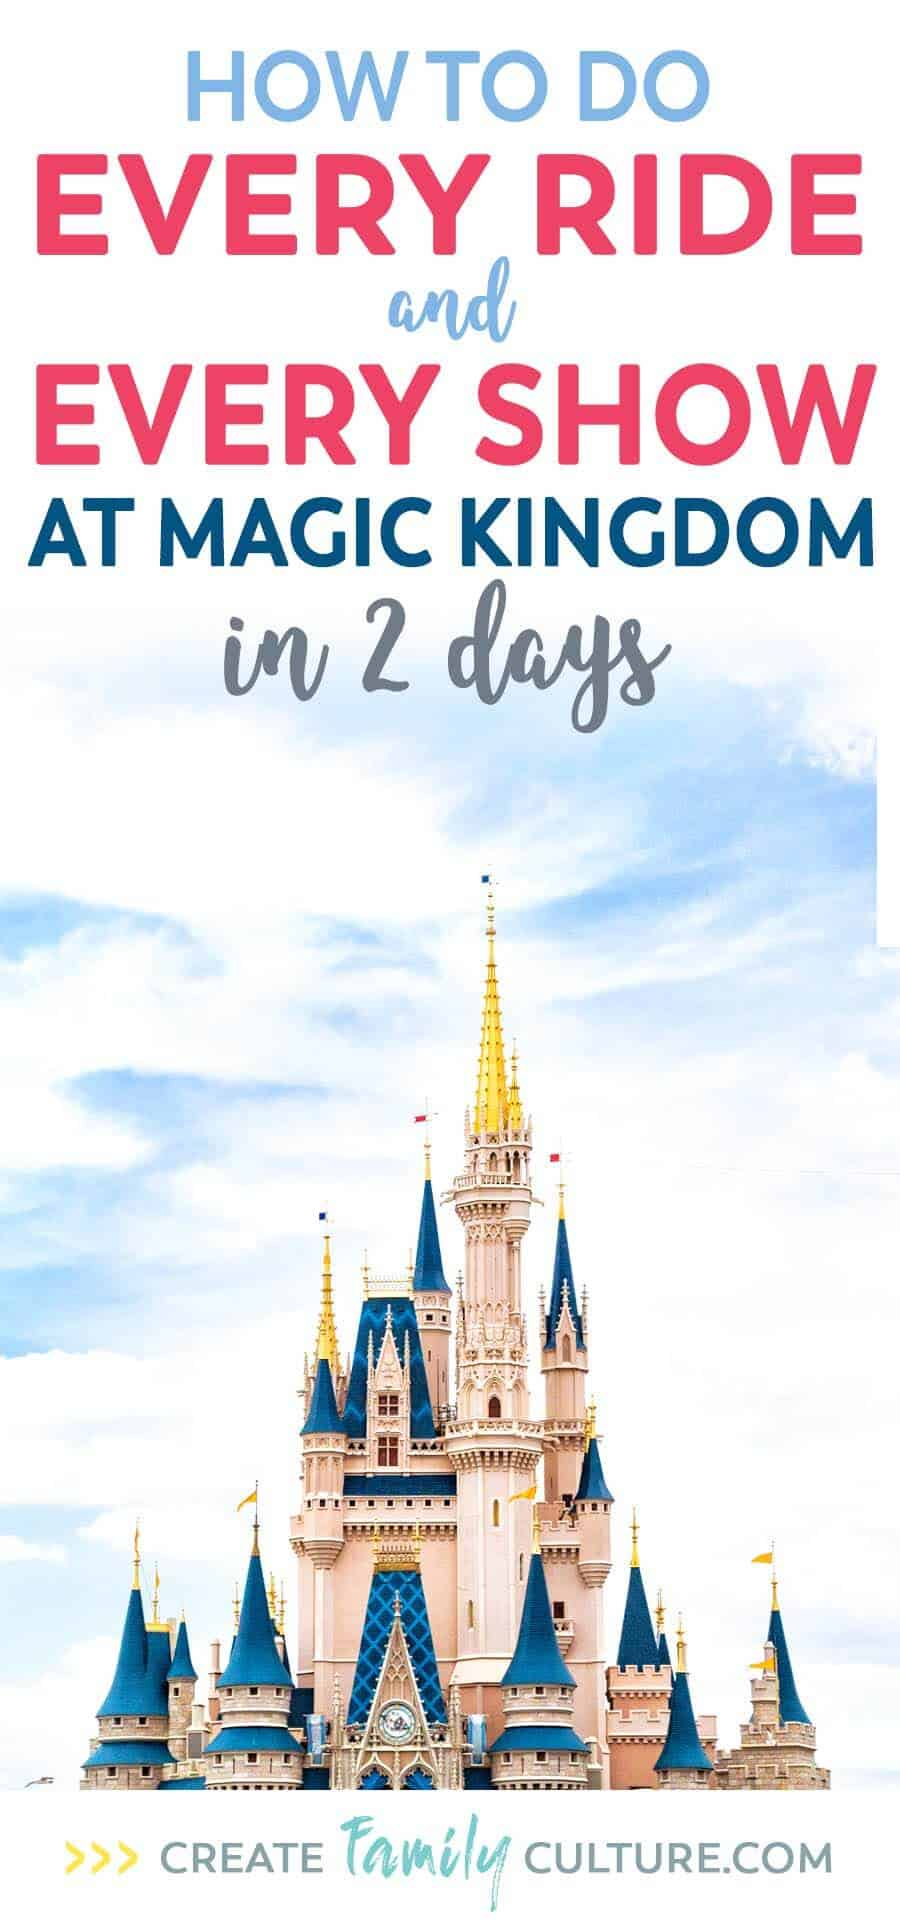 How to do every ride and show at Magic Kingdom | Disney World Itinerary | Magic Kingdom Trip Planner | Disney Tips and Tricks